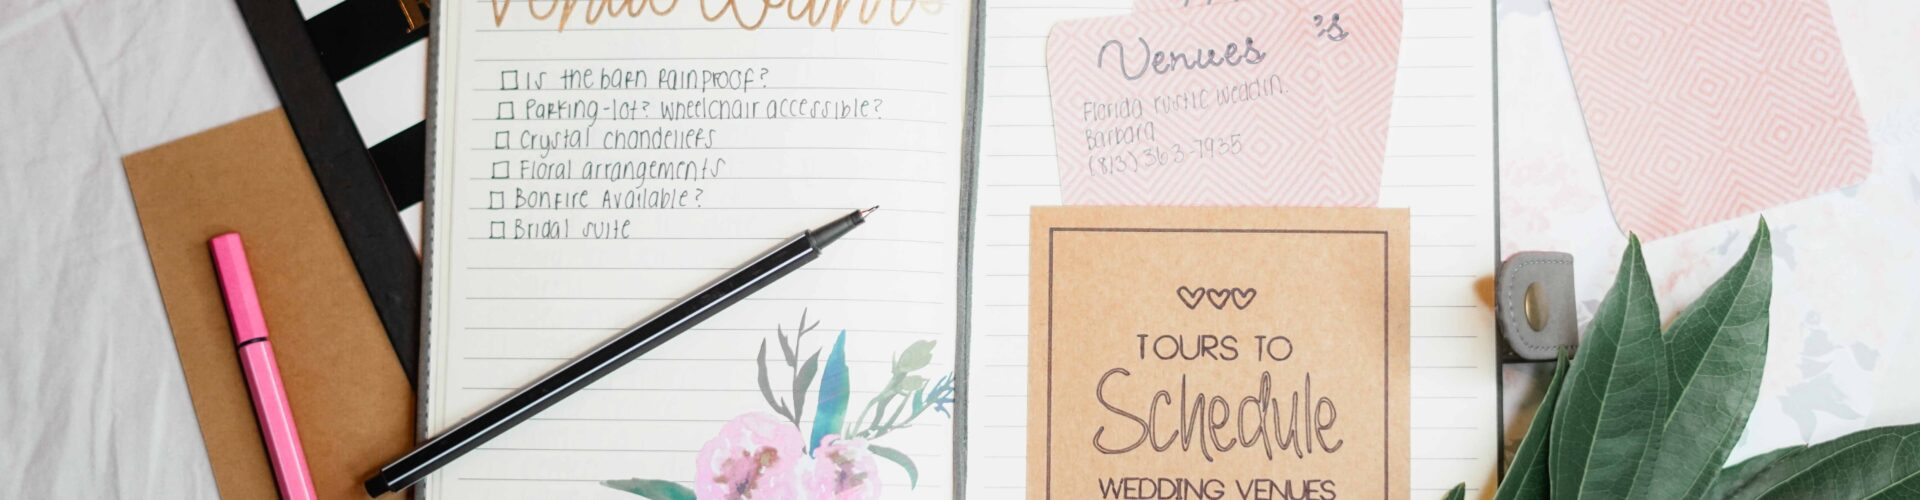 Planning Your Wedding During Covid 19